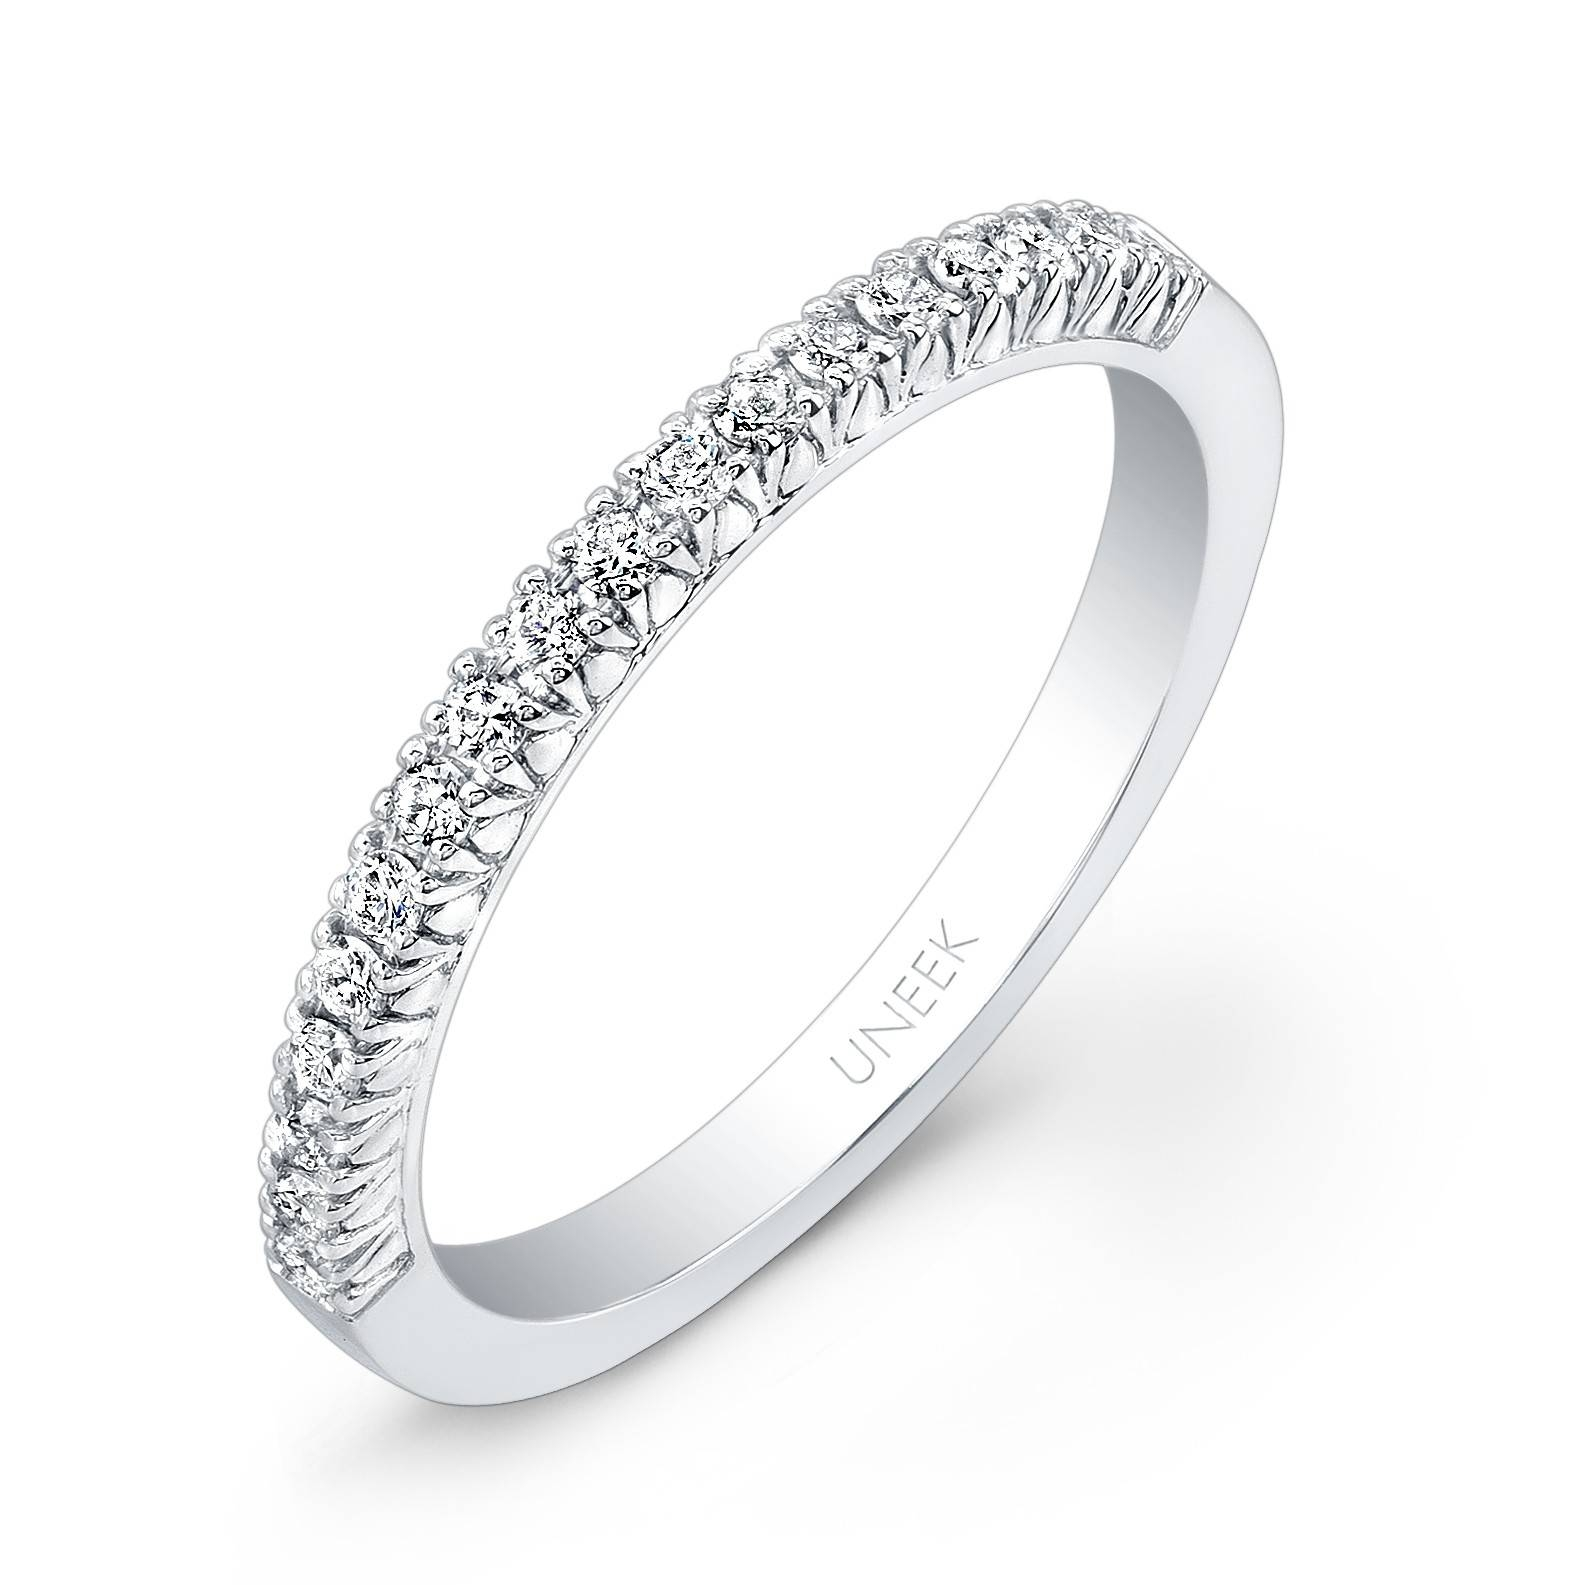 Uneek 18 Diamond French Pave Wedding Band In 14K W With Regard To French Pave Wedding Bands (Gallery 15 of 15)